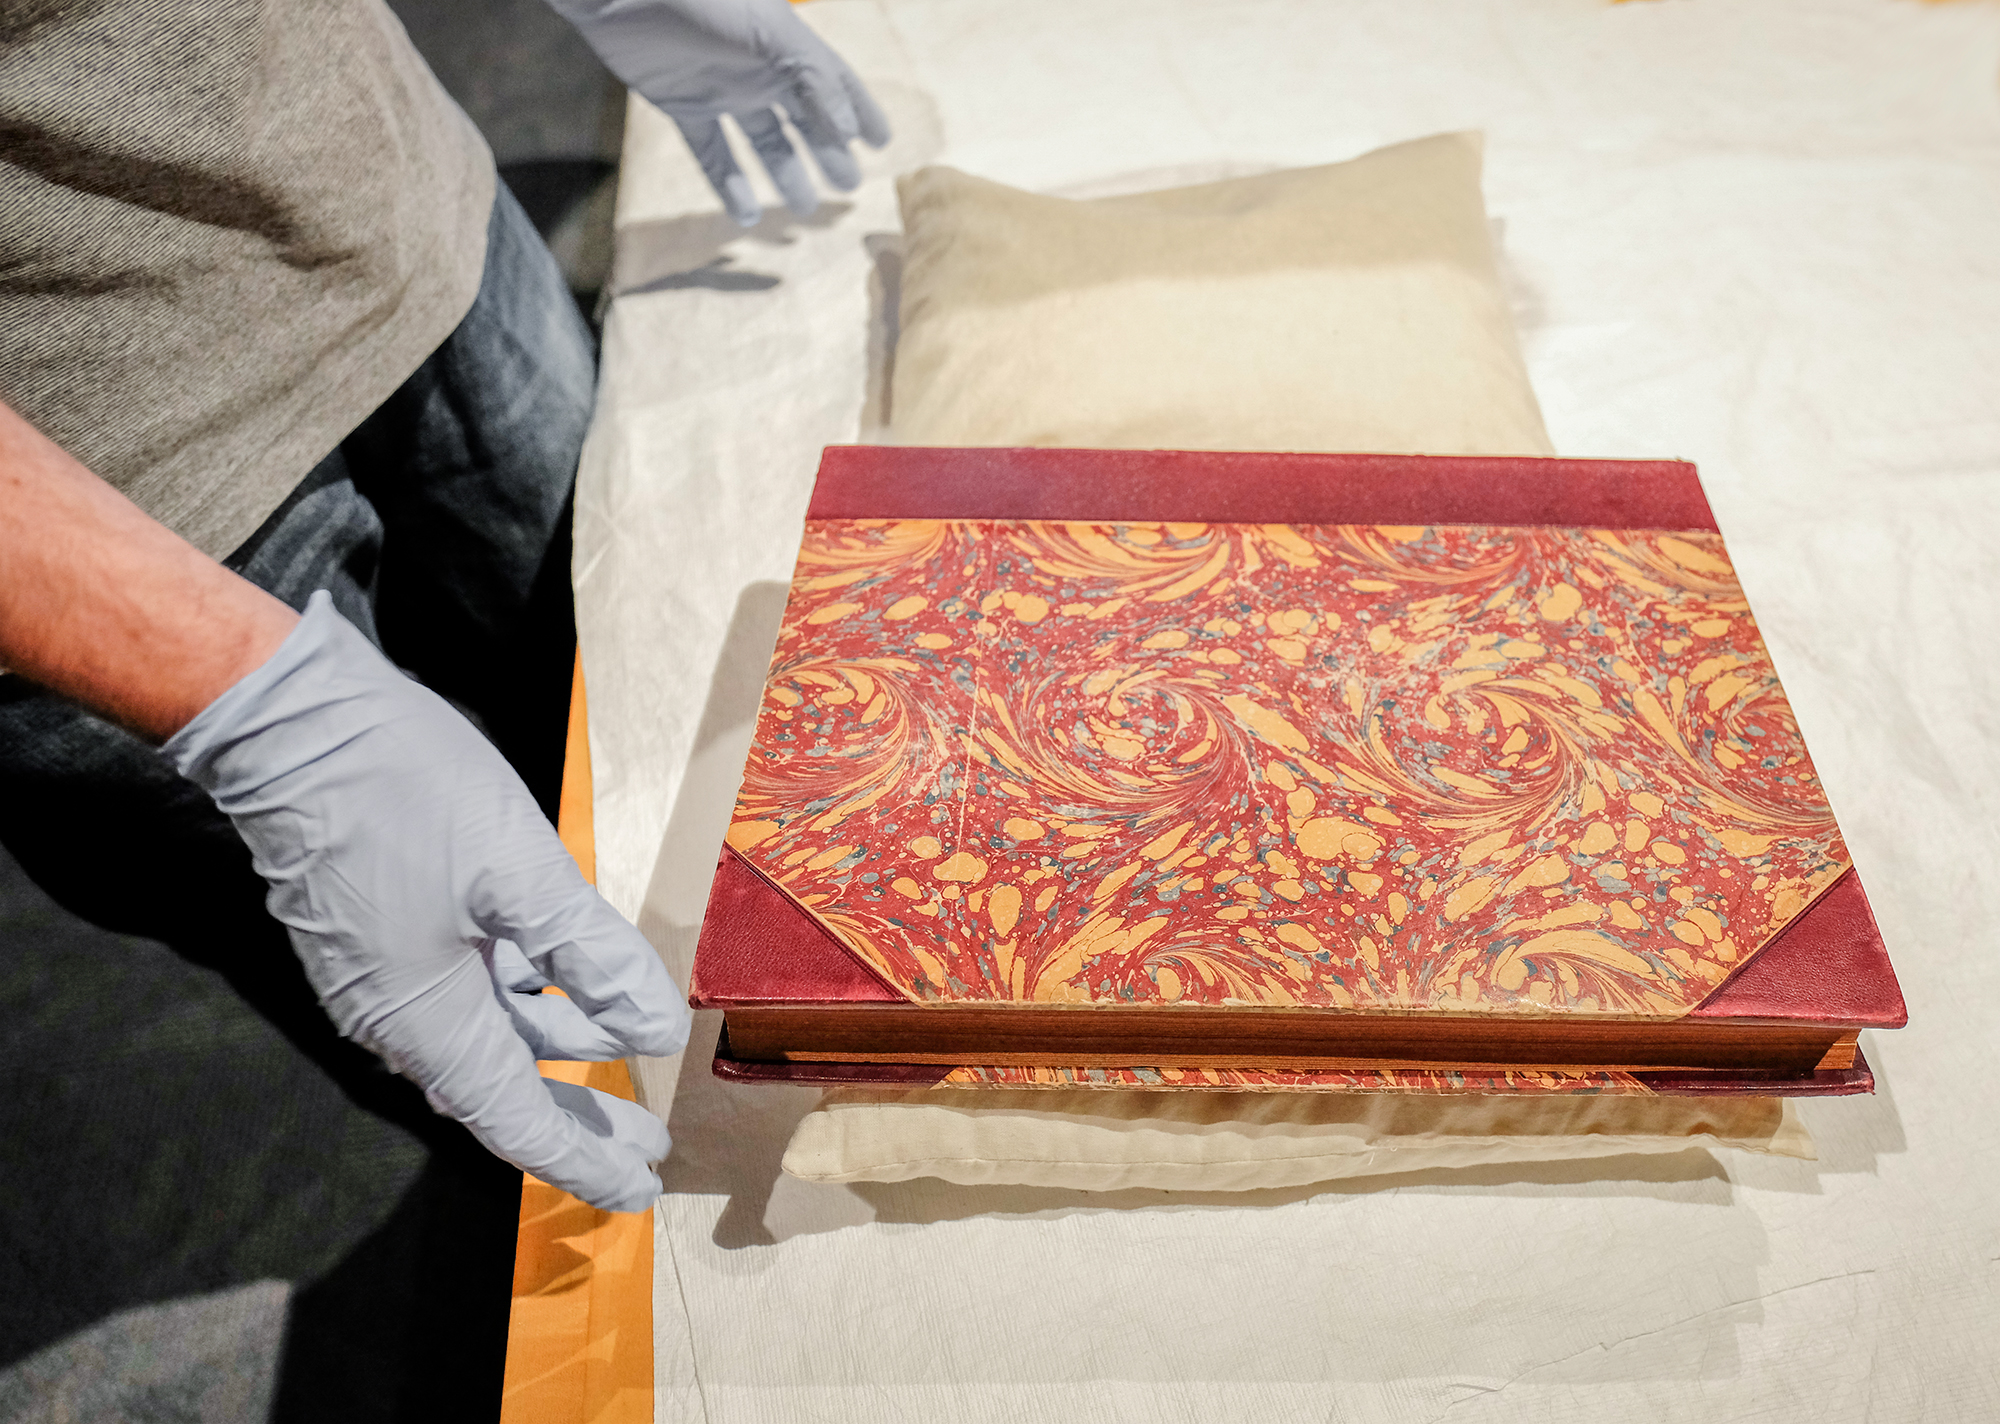 Te Papa S Blog Rare Books And The Marvellous Art Of Marbling